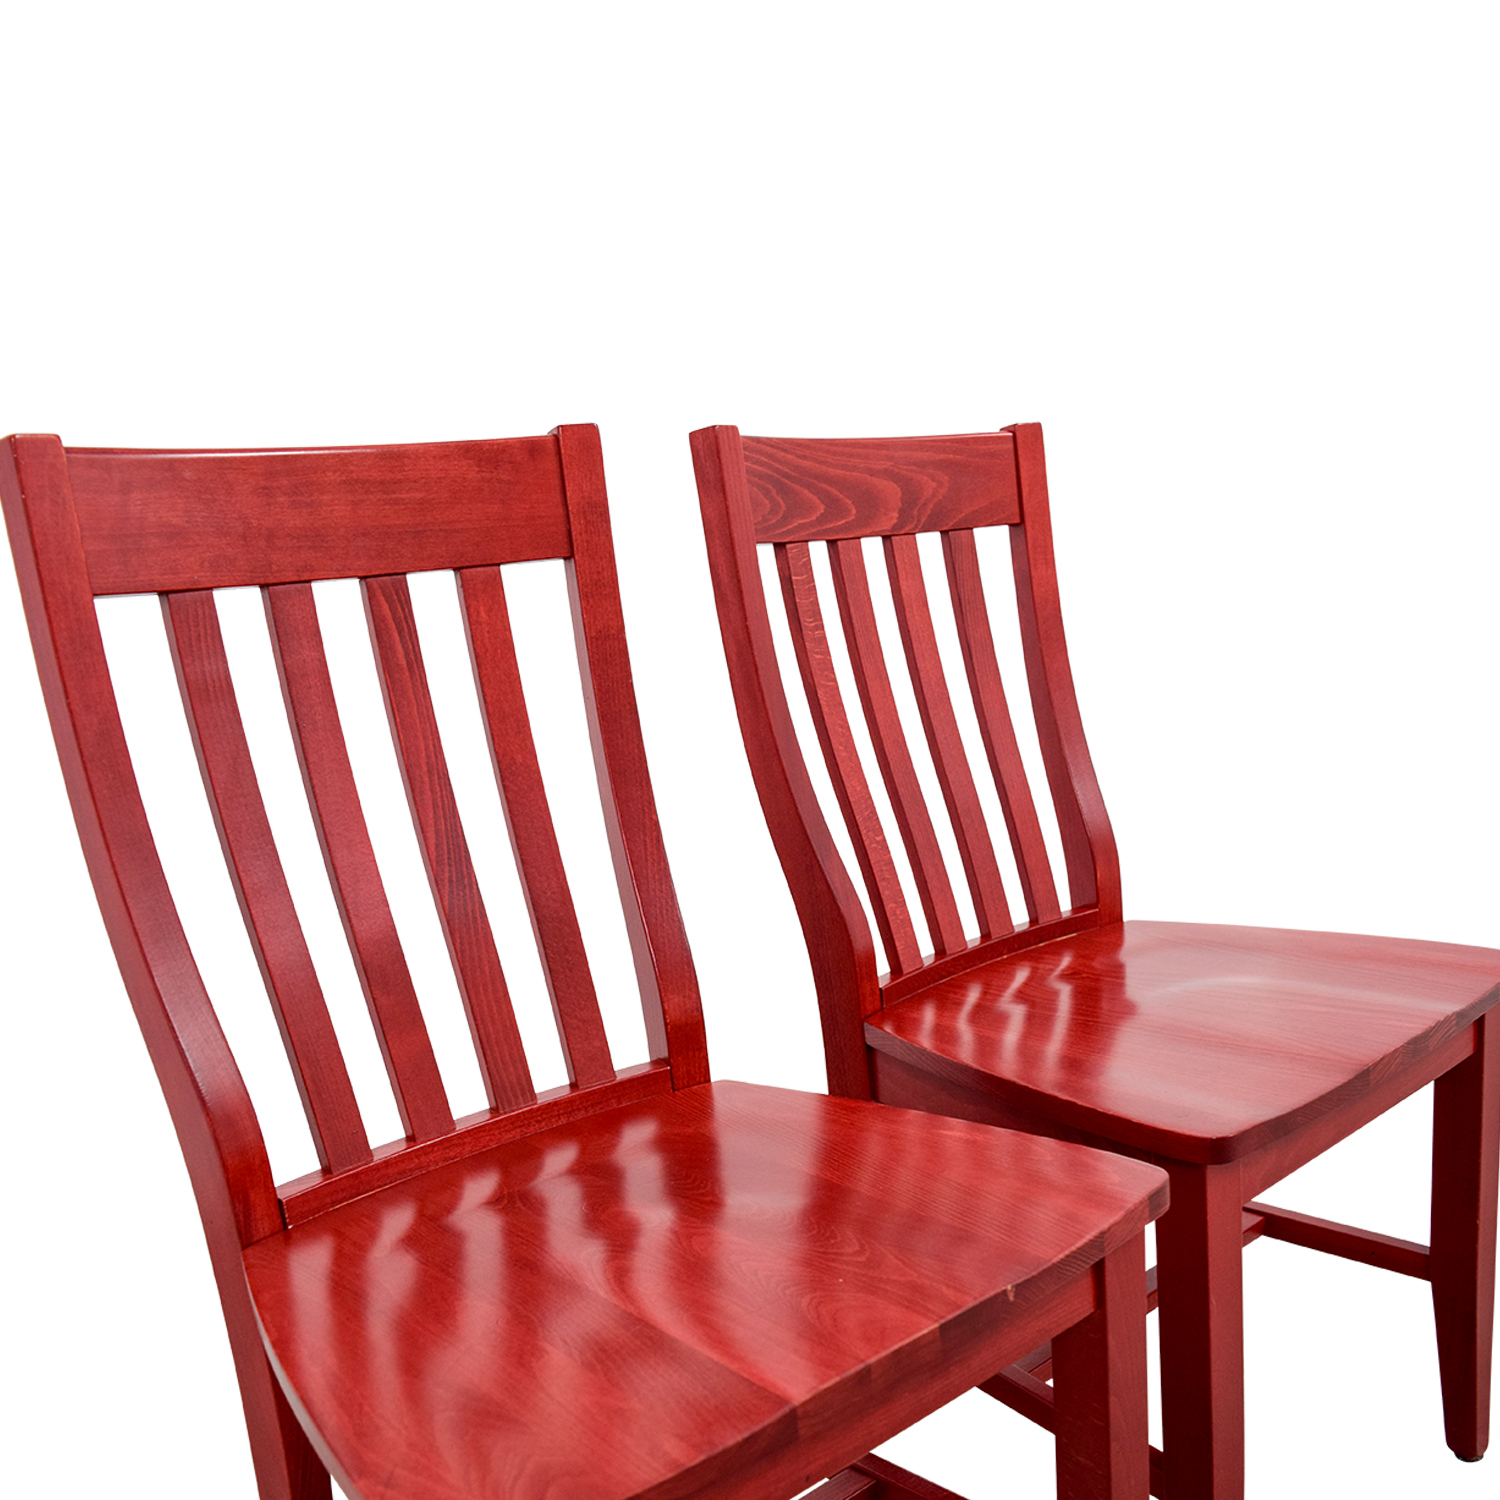 pottery barn chairs porch rocking chair 79 off schoolhouse